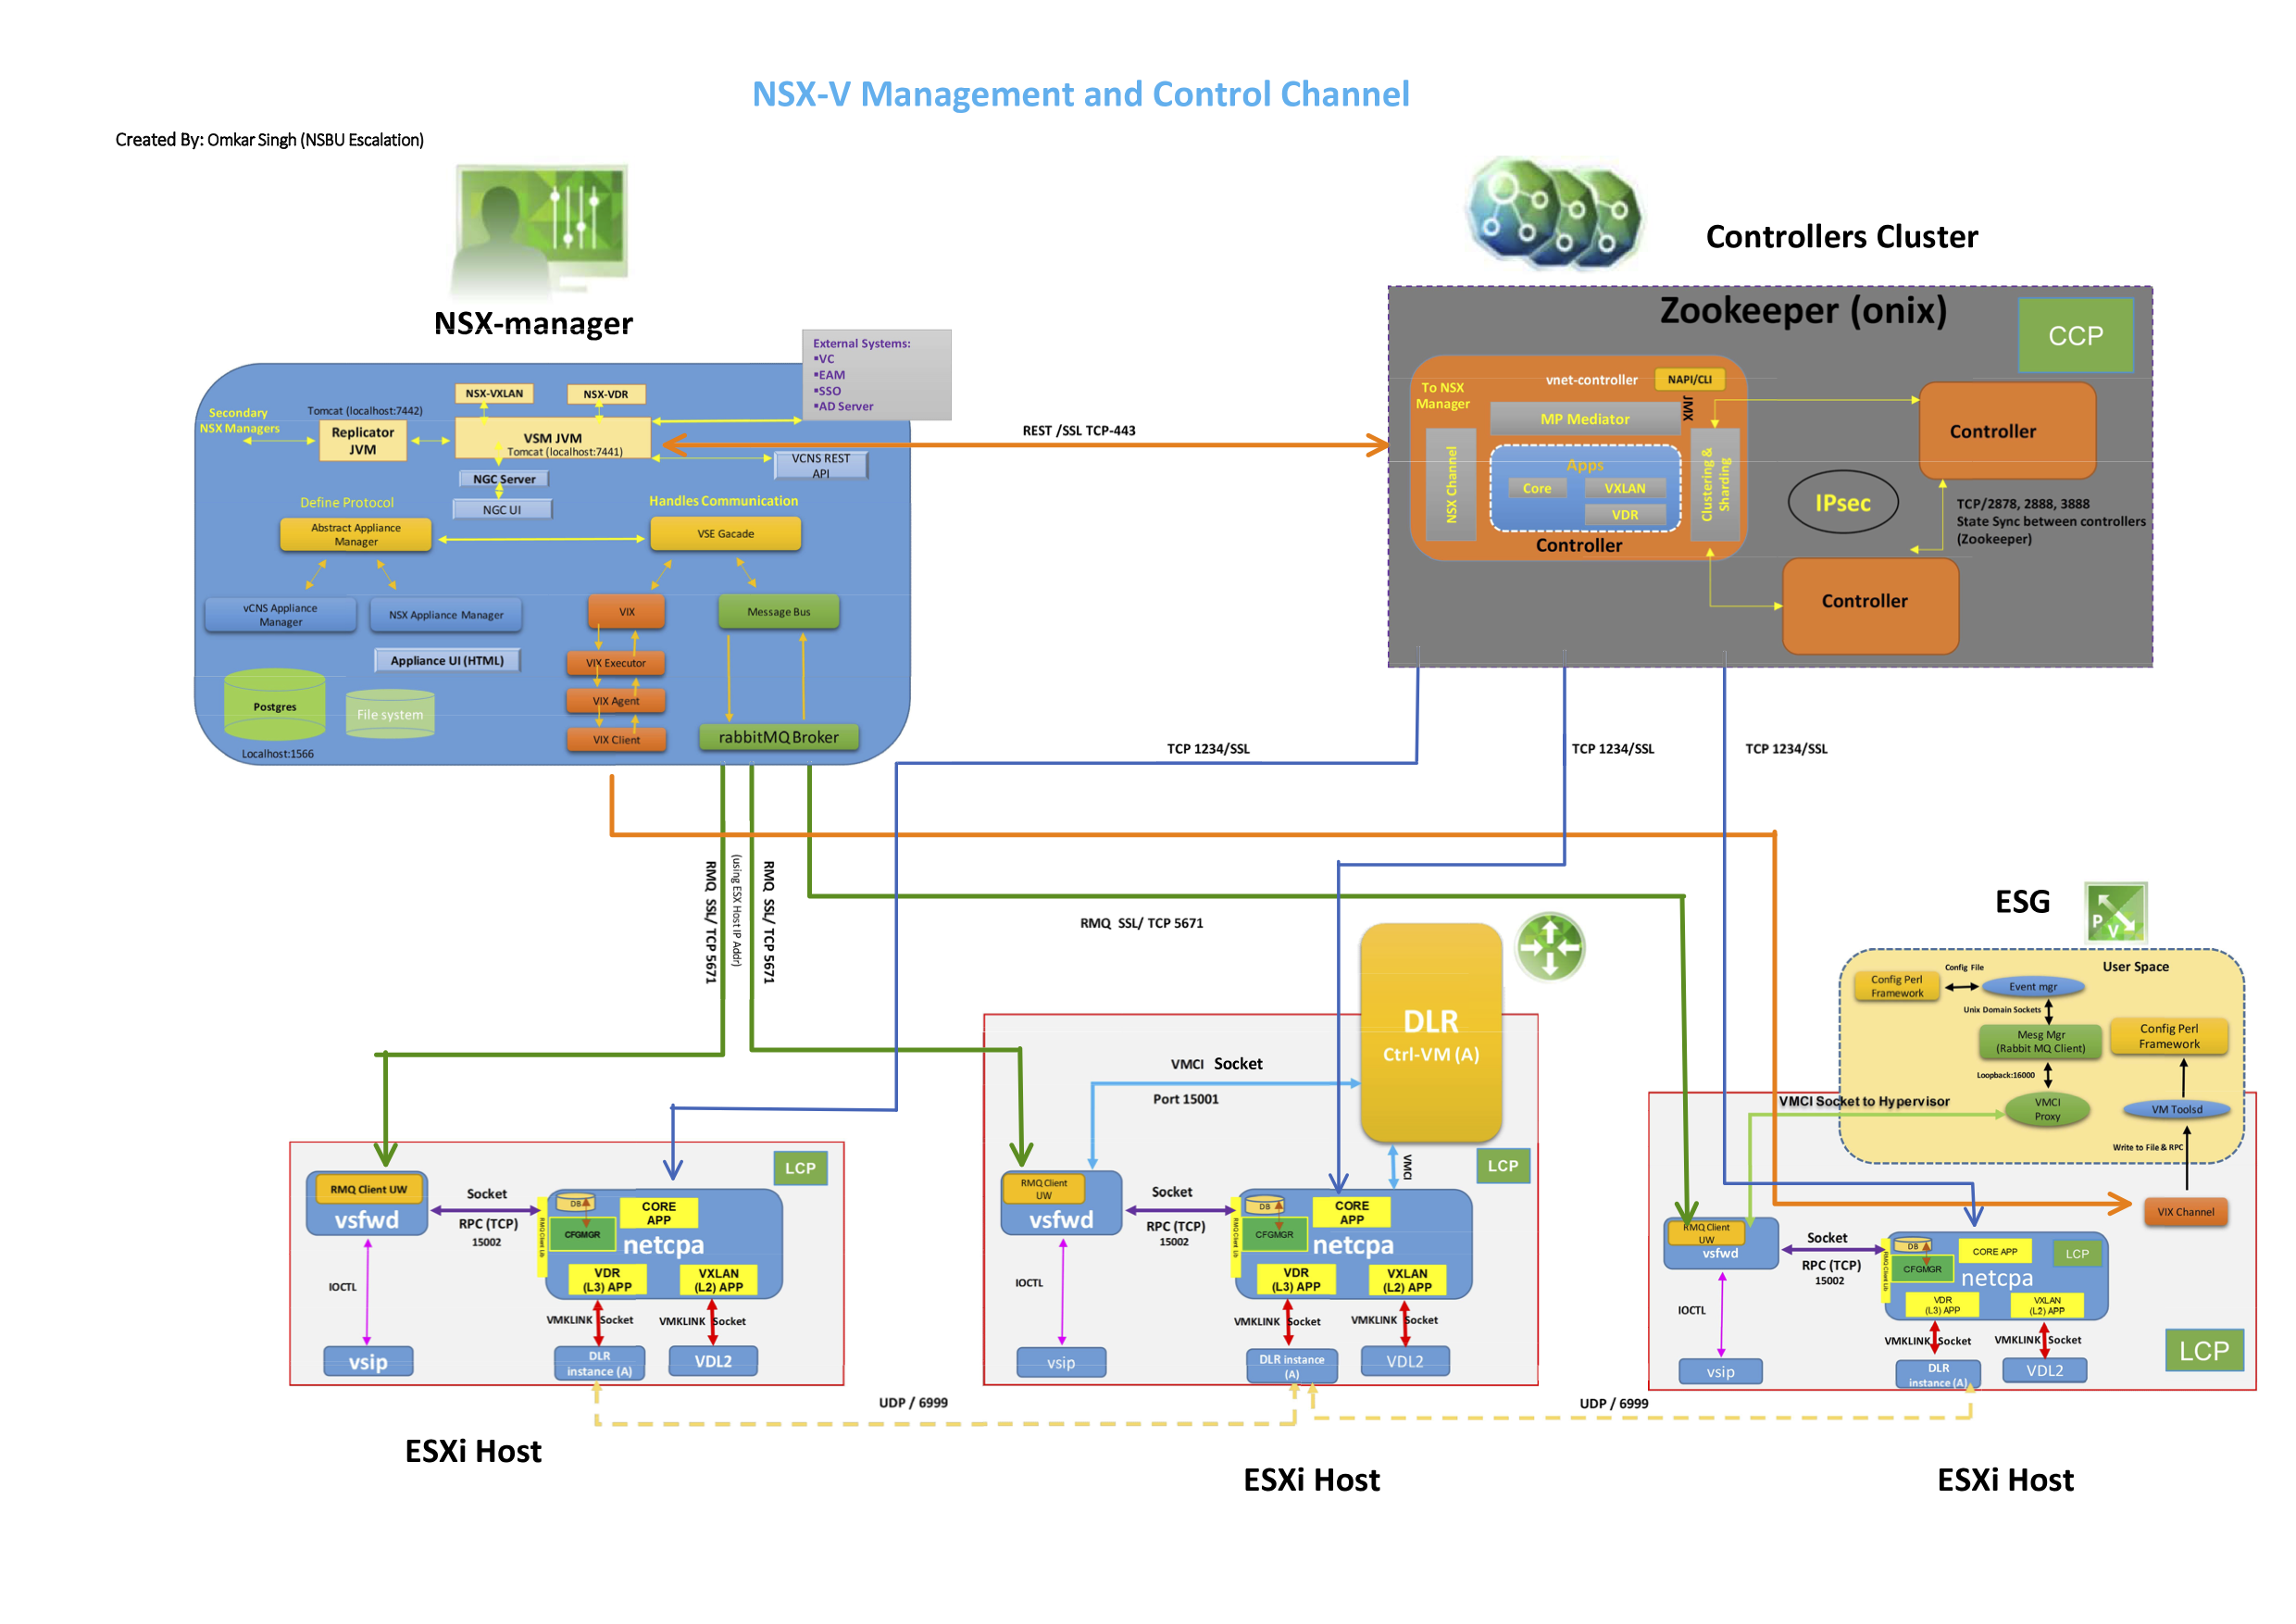 vmware nsx-v control and management plane connections diagram